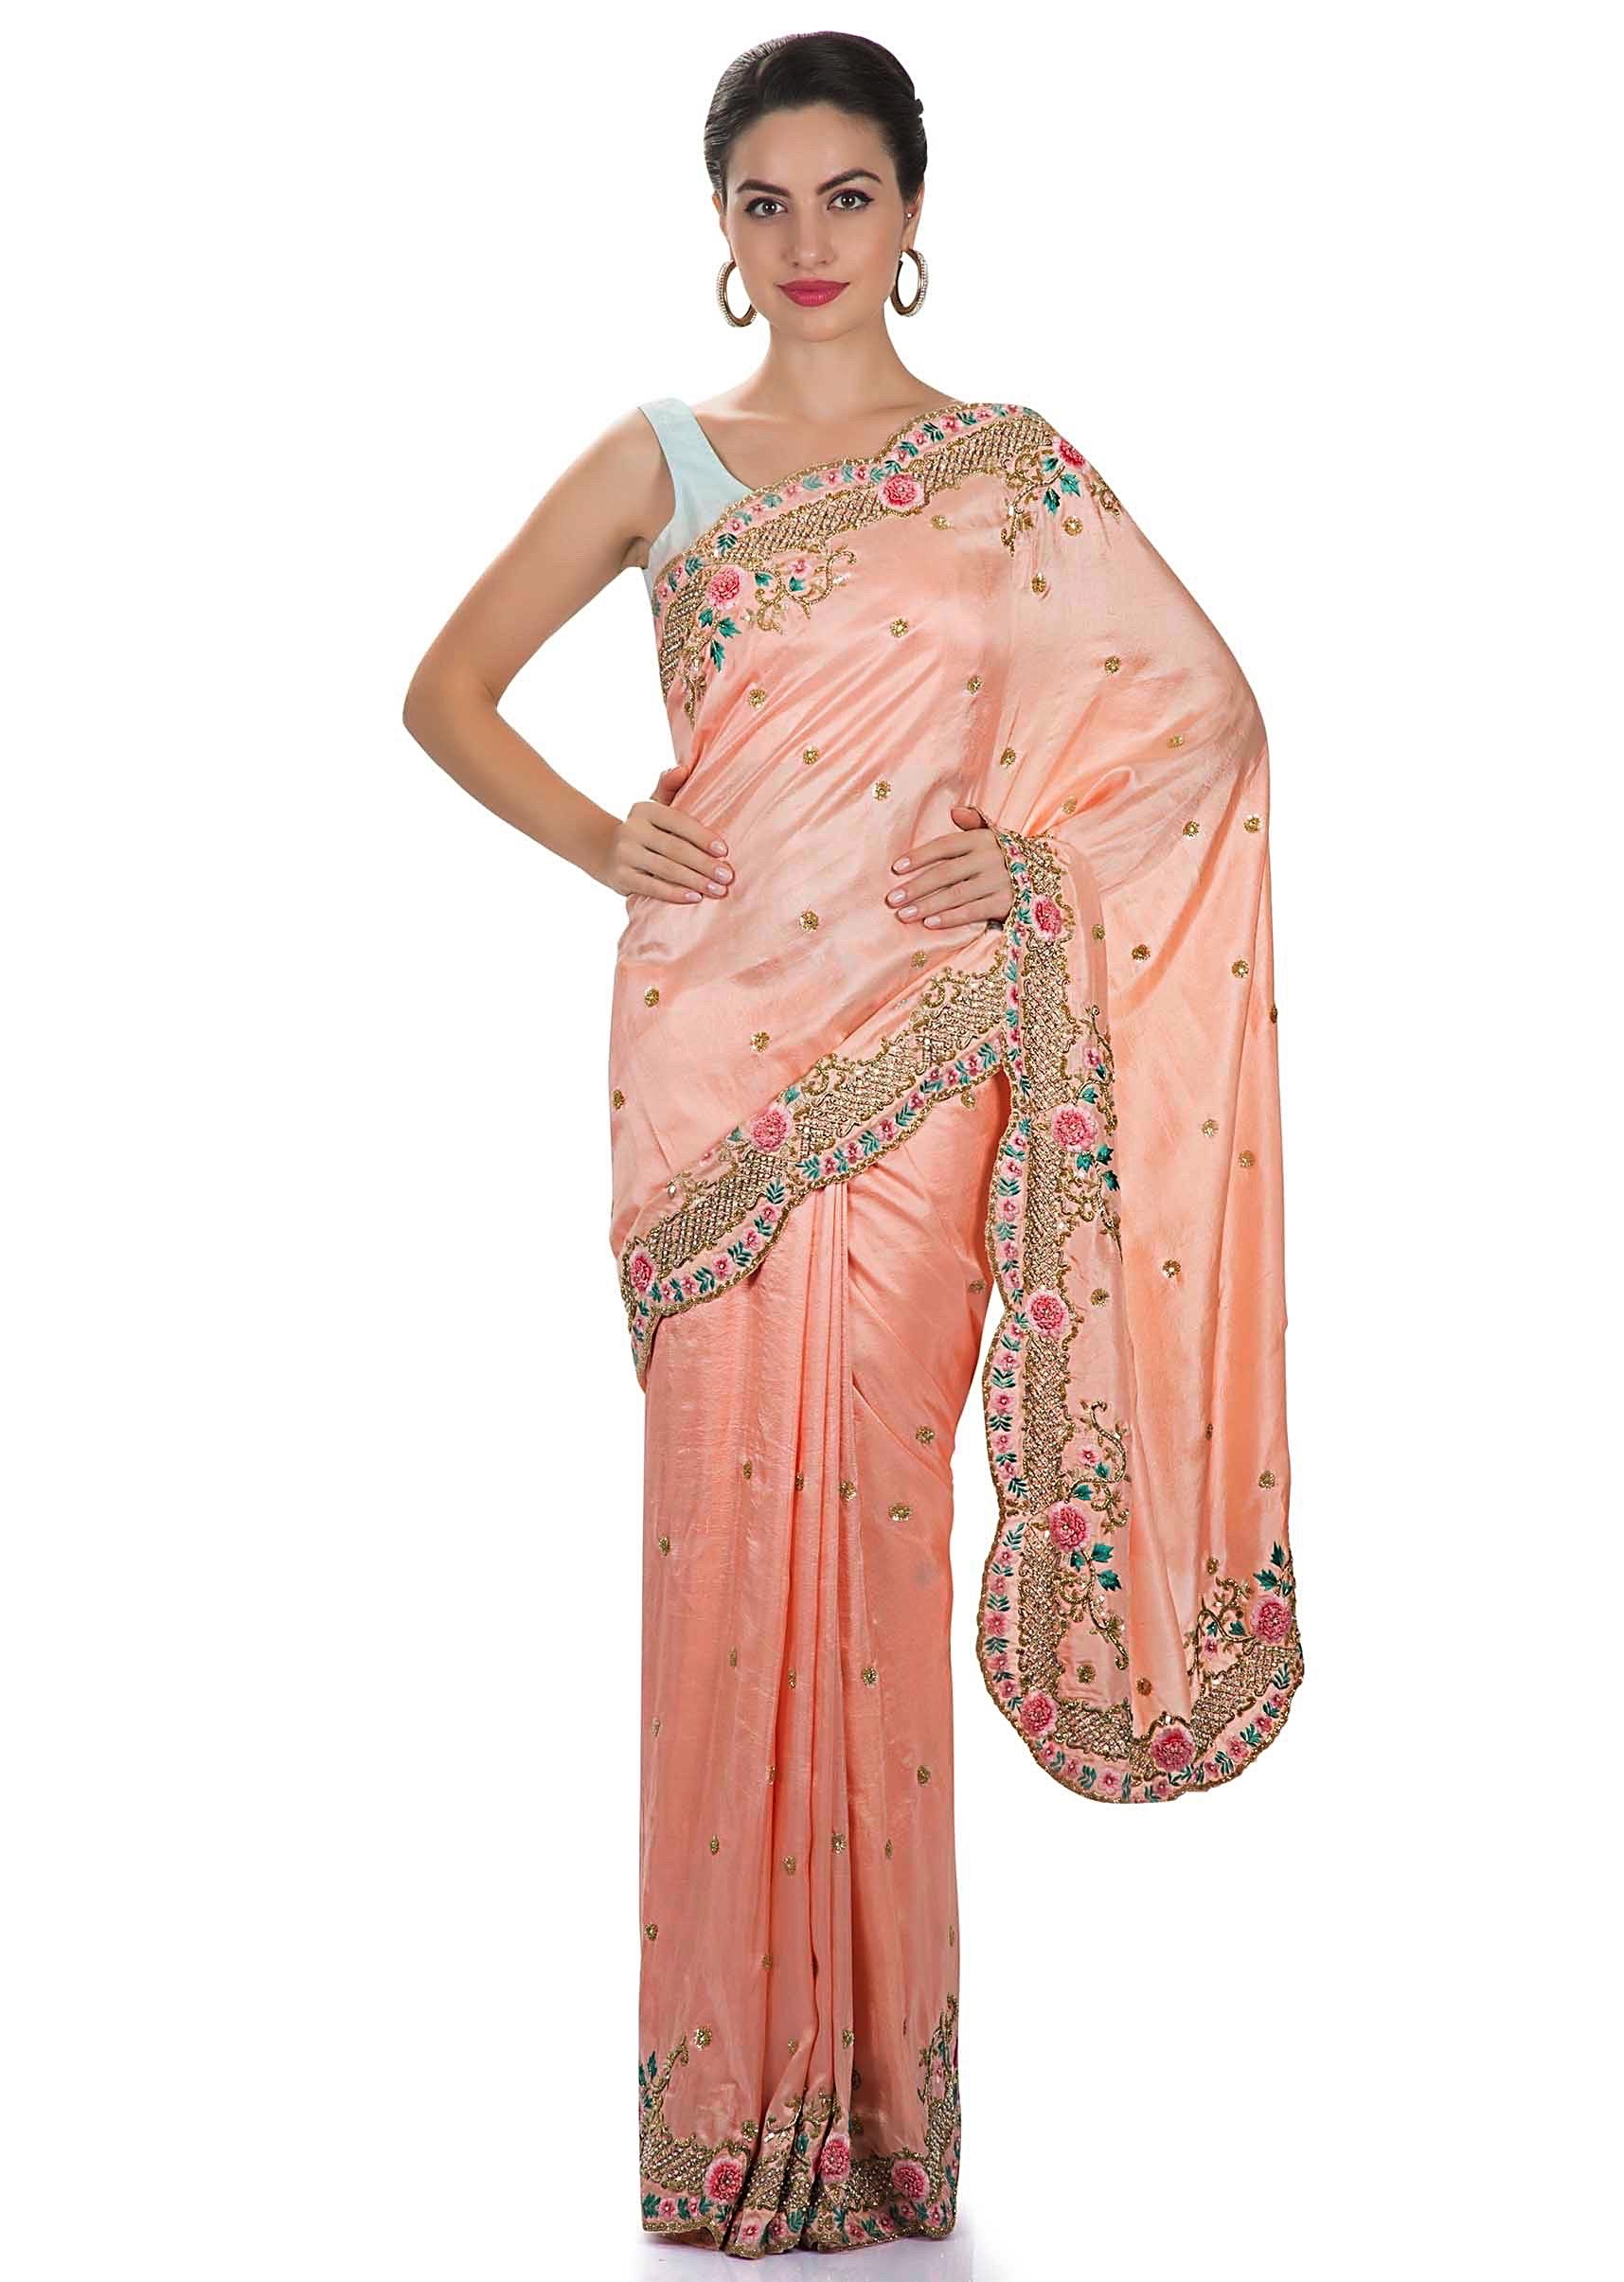 4b3e0a5a823e8 Blush pink satin chiffon saree with resham and zardosi flower pattern only  on KalkiMore Detail